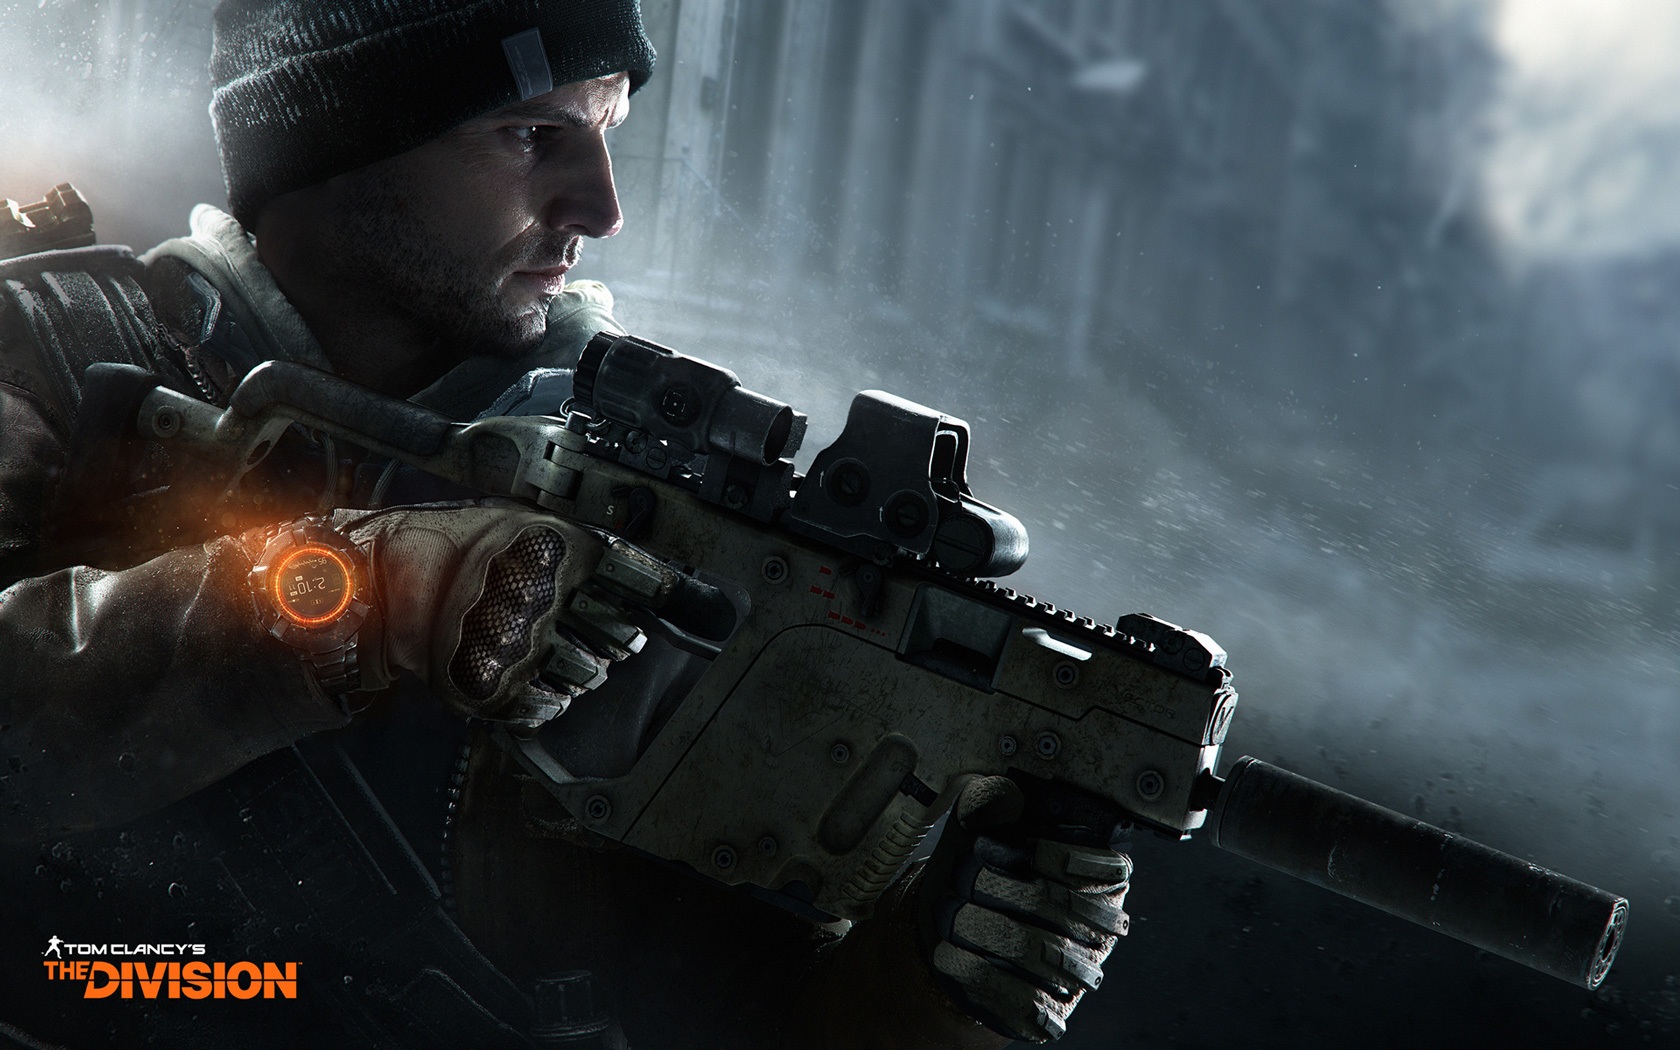 The Division Wallpaper in 1680x1050